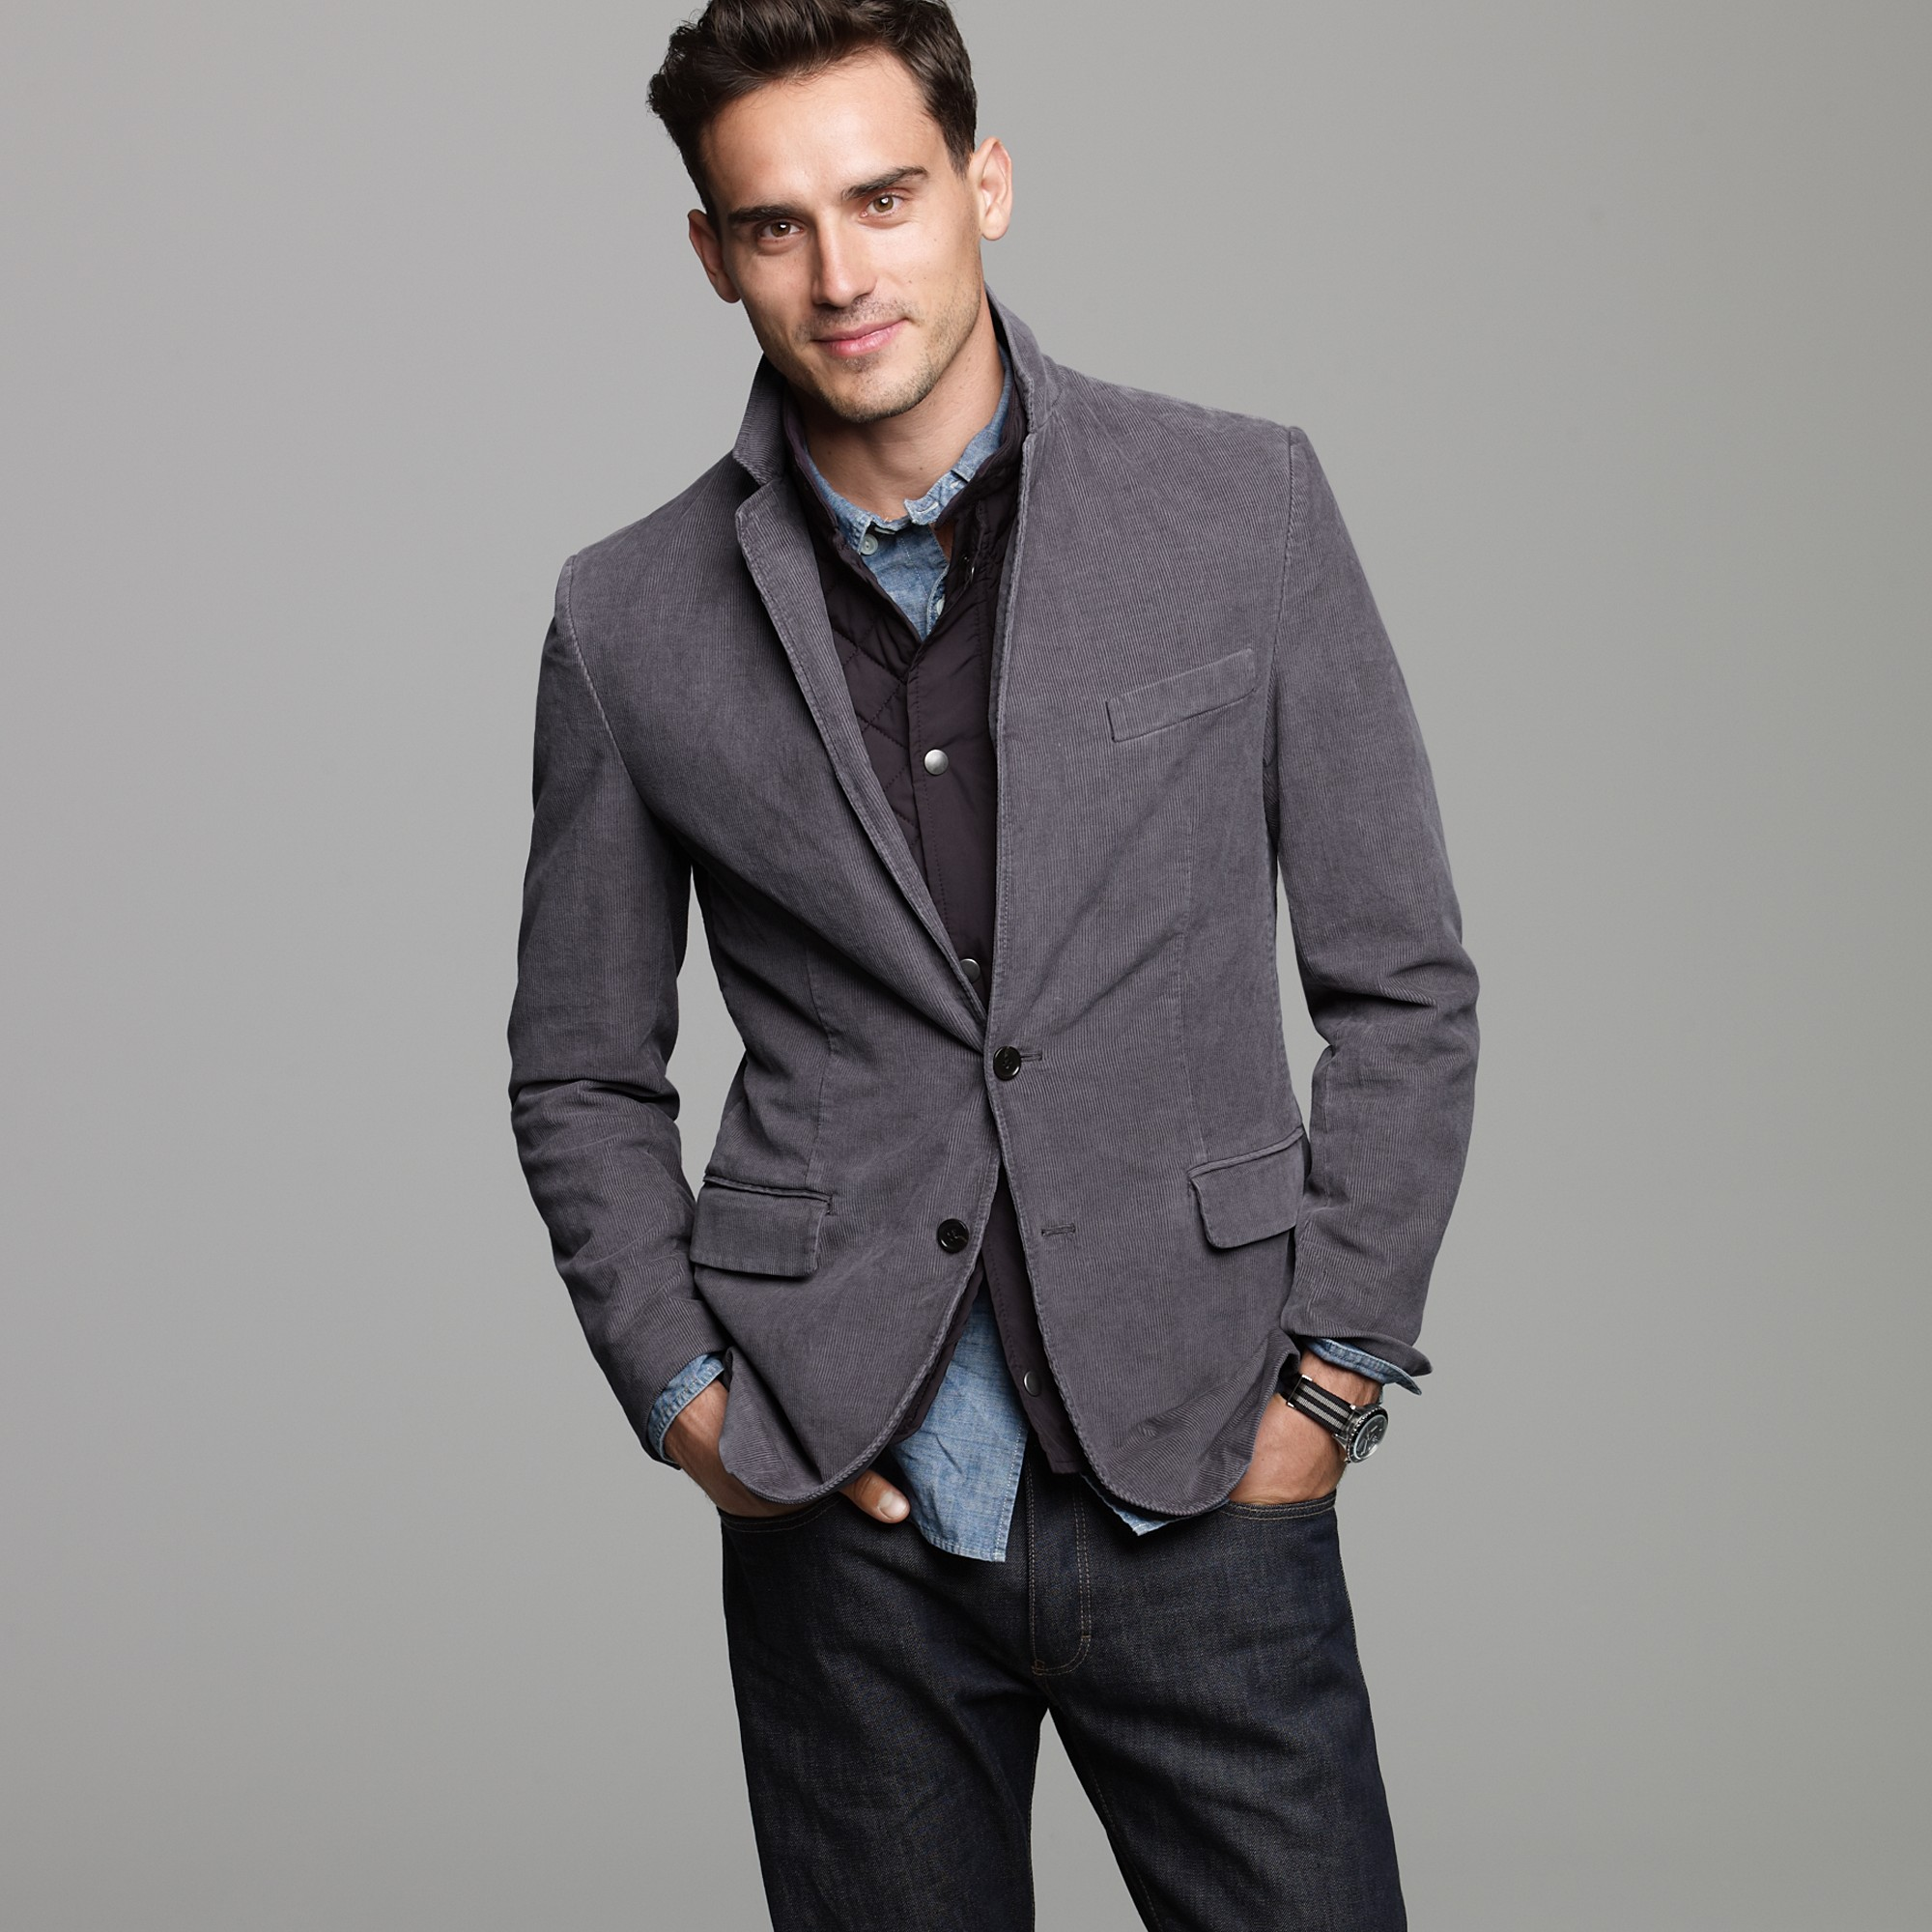 Images of Corduroy Sport Coat - Reikian